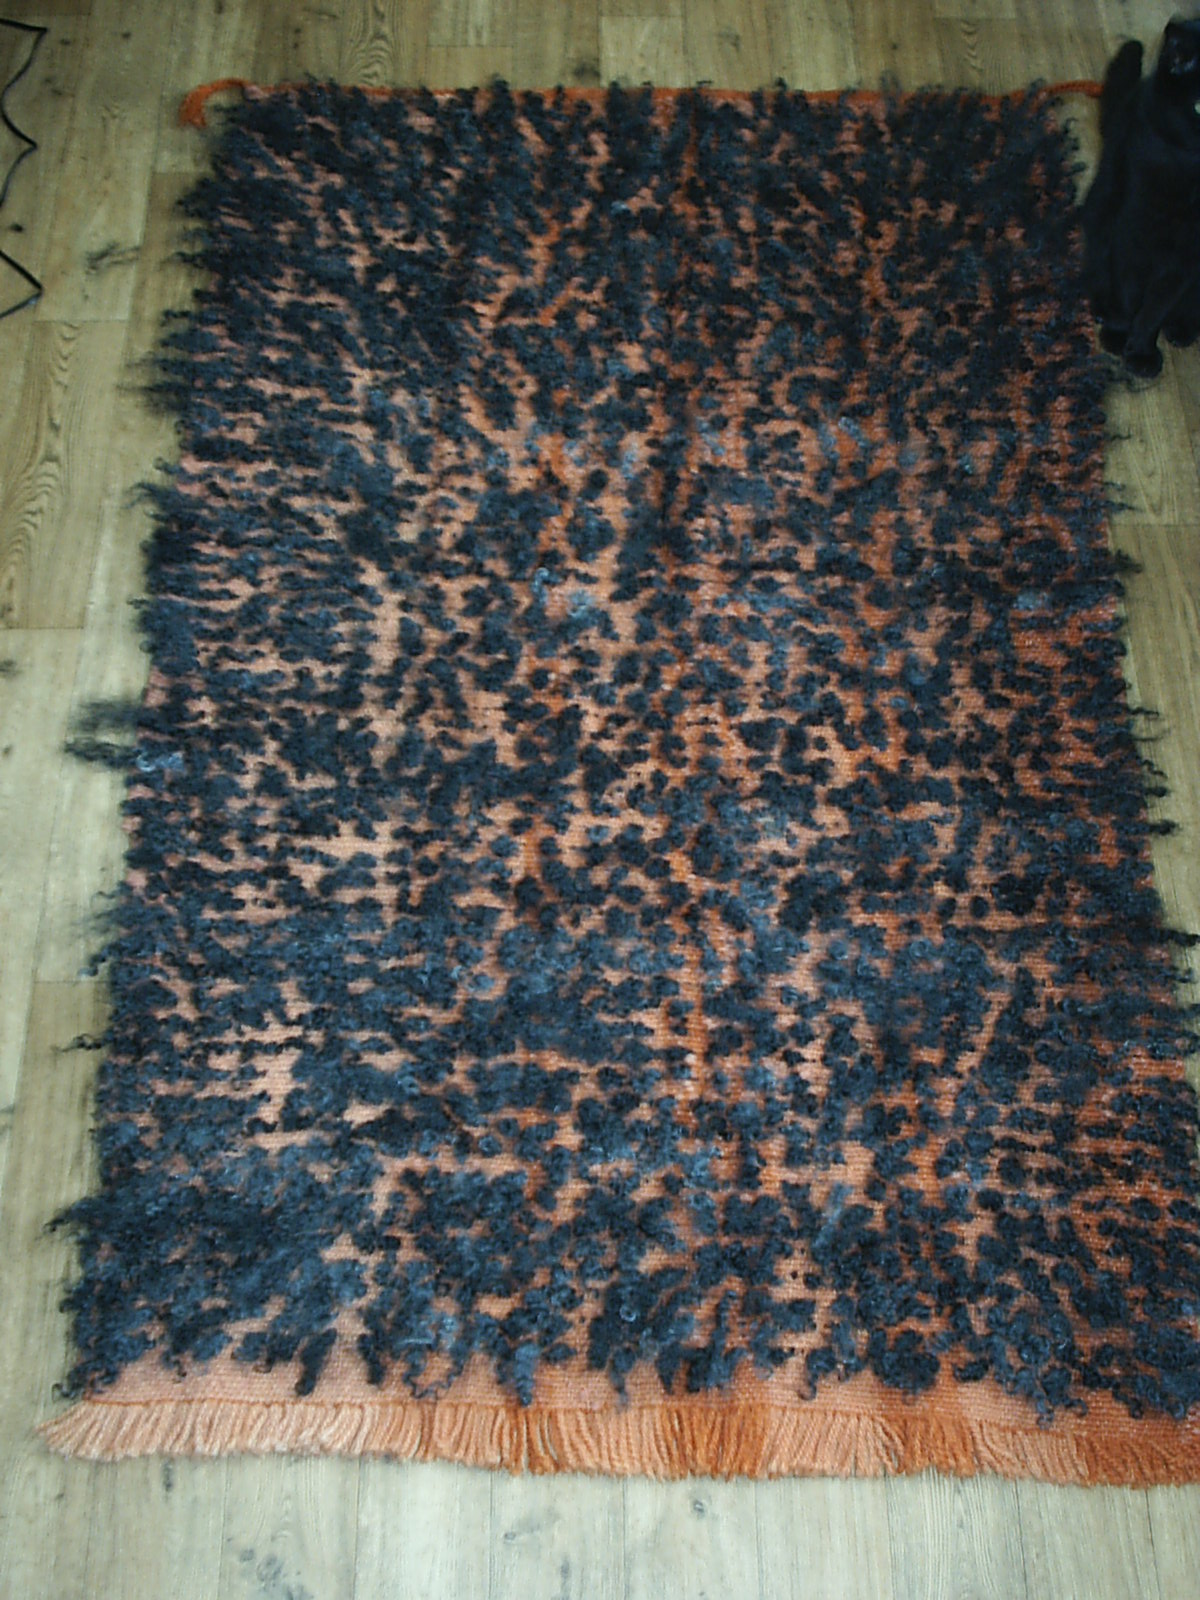 Warp Weighted Loom For Rug Weaving